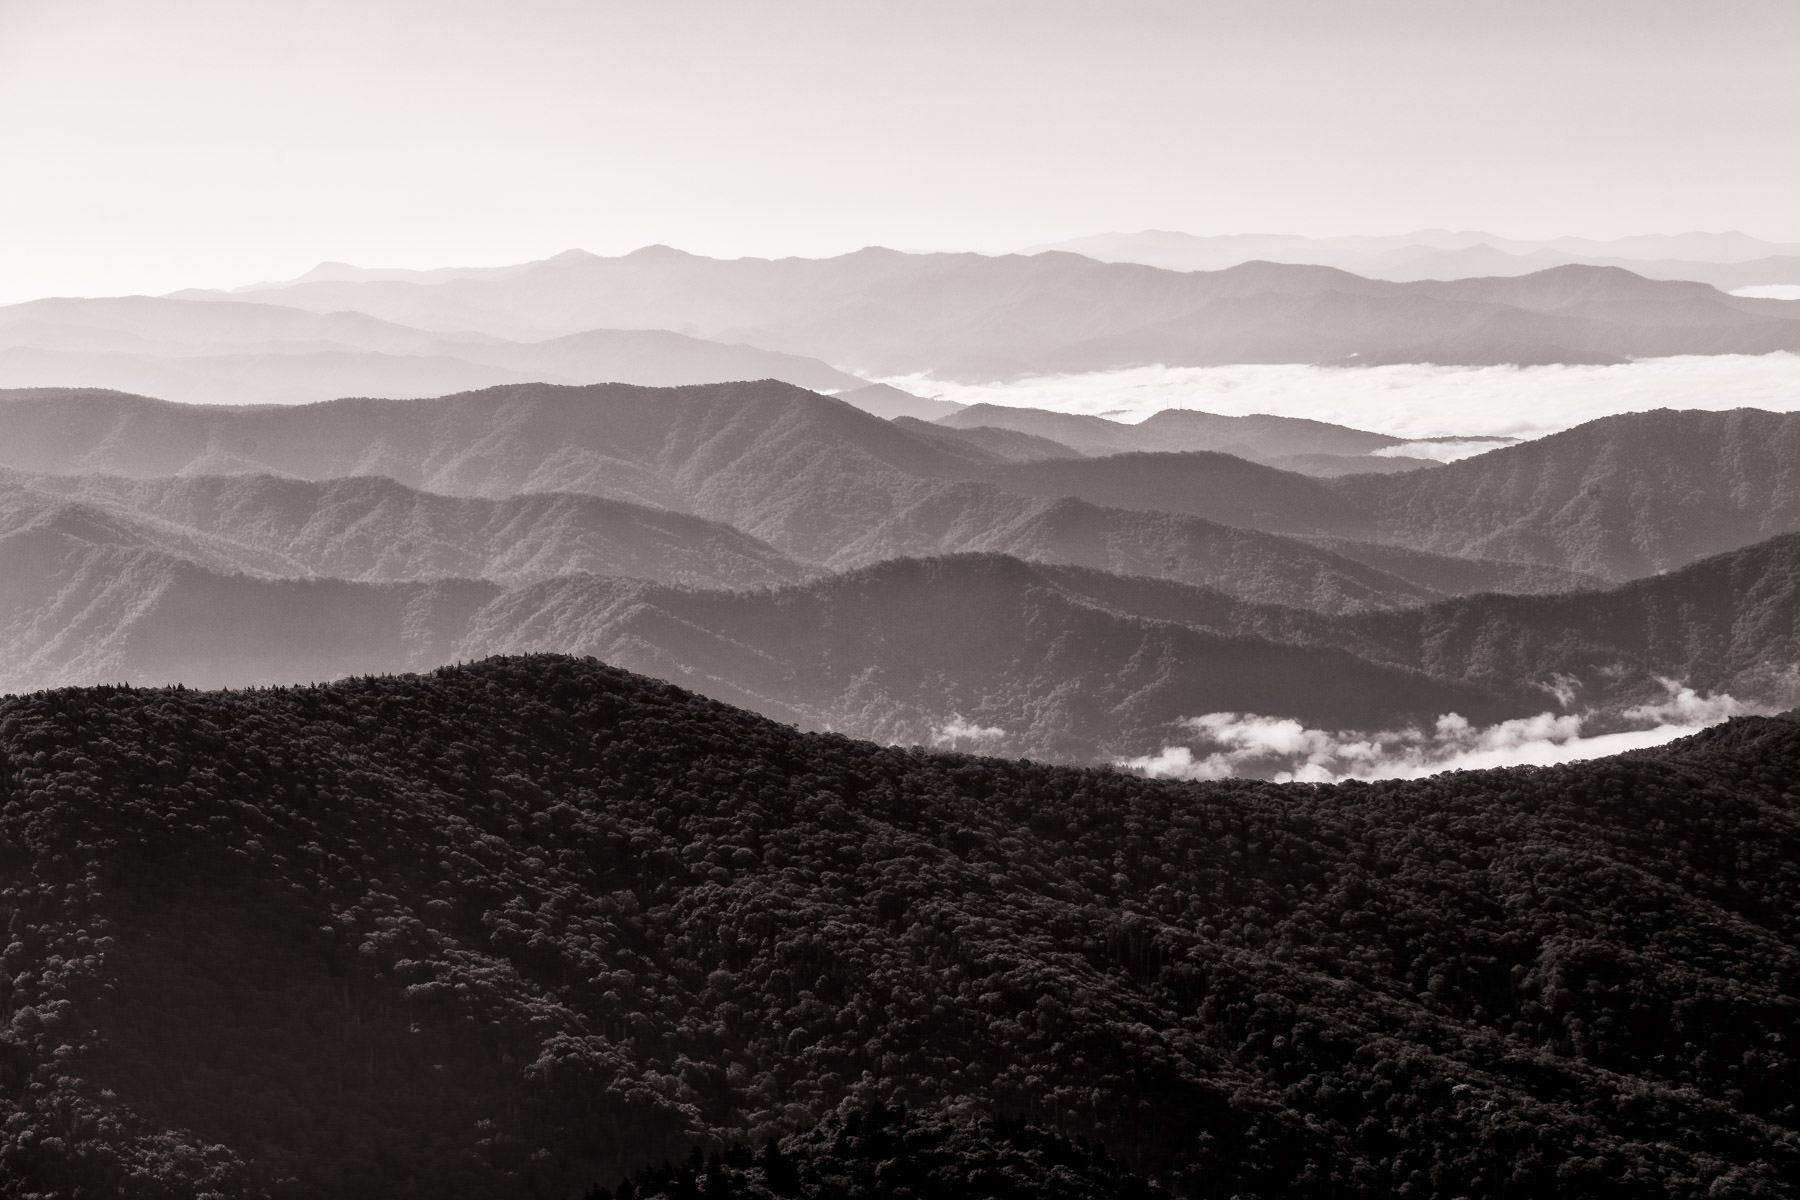 Mountains stretch into the distance as seen from atop Clingmans Dome in the Great Smoky Mountains National Park.